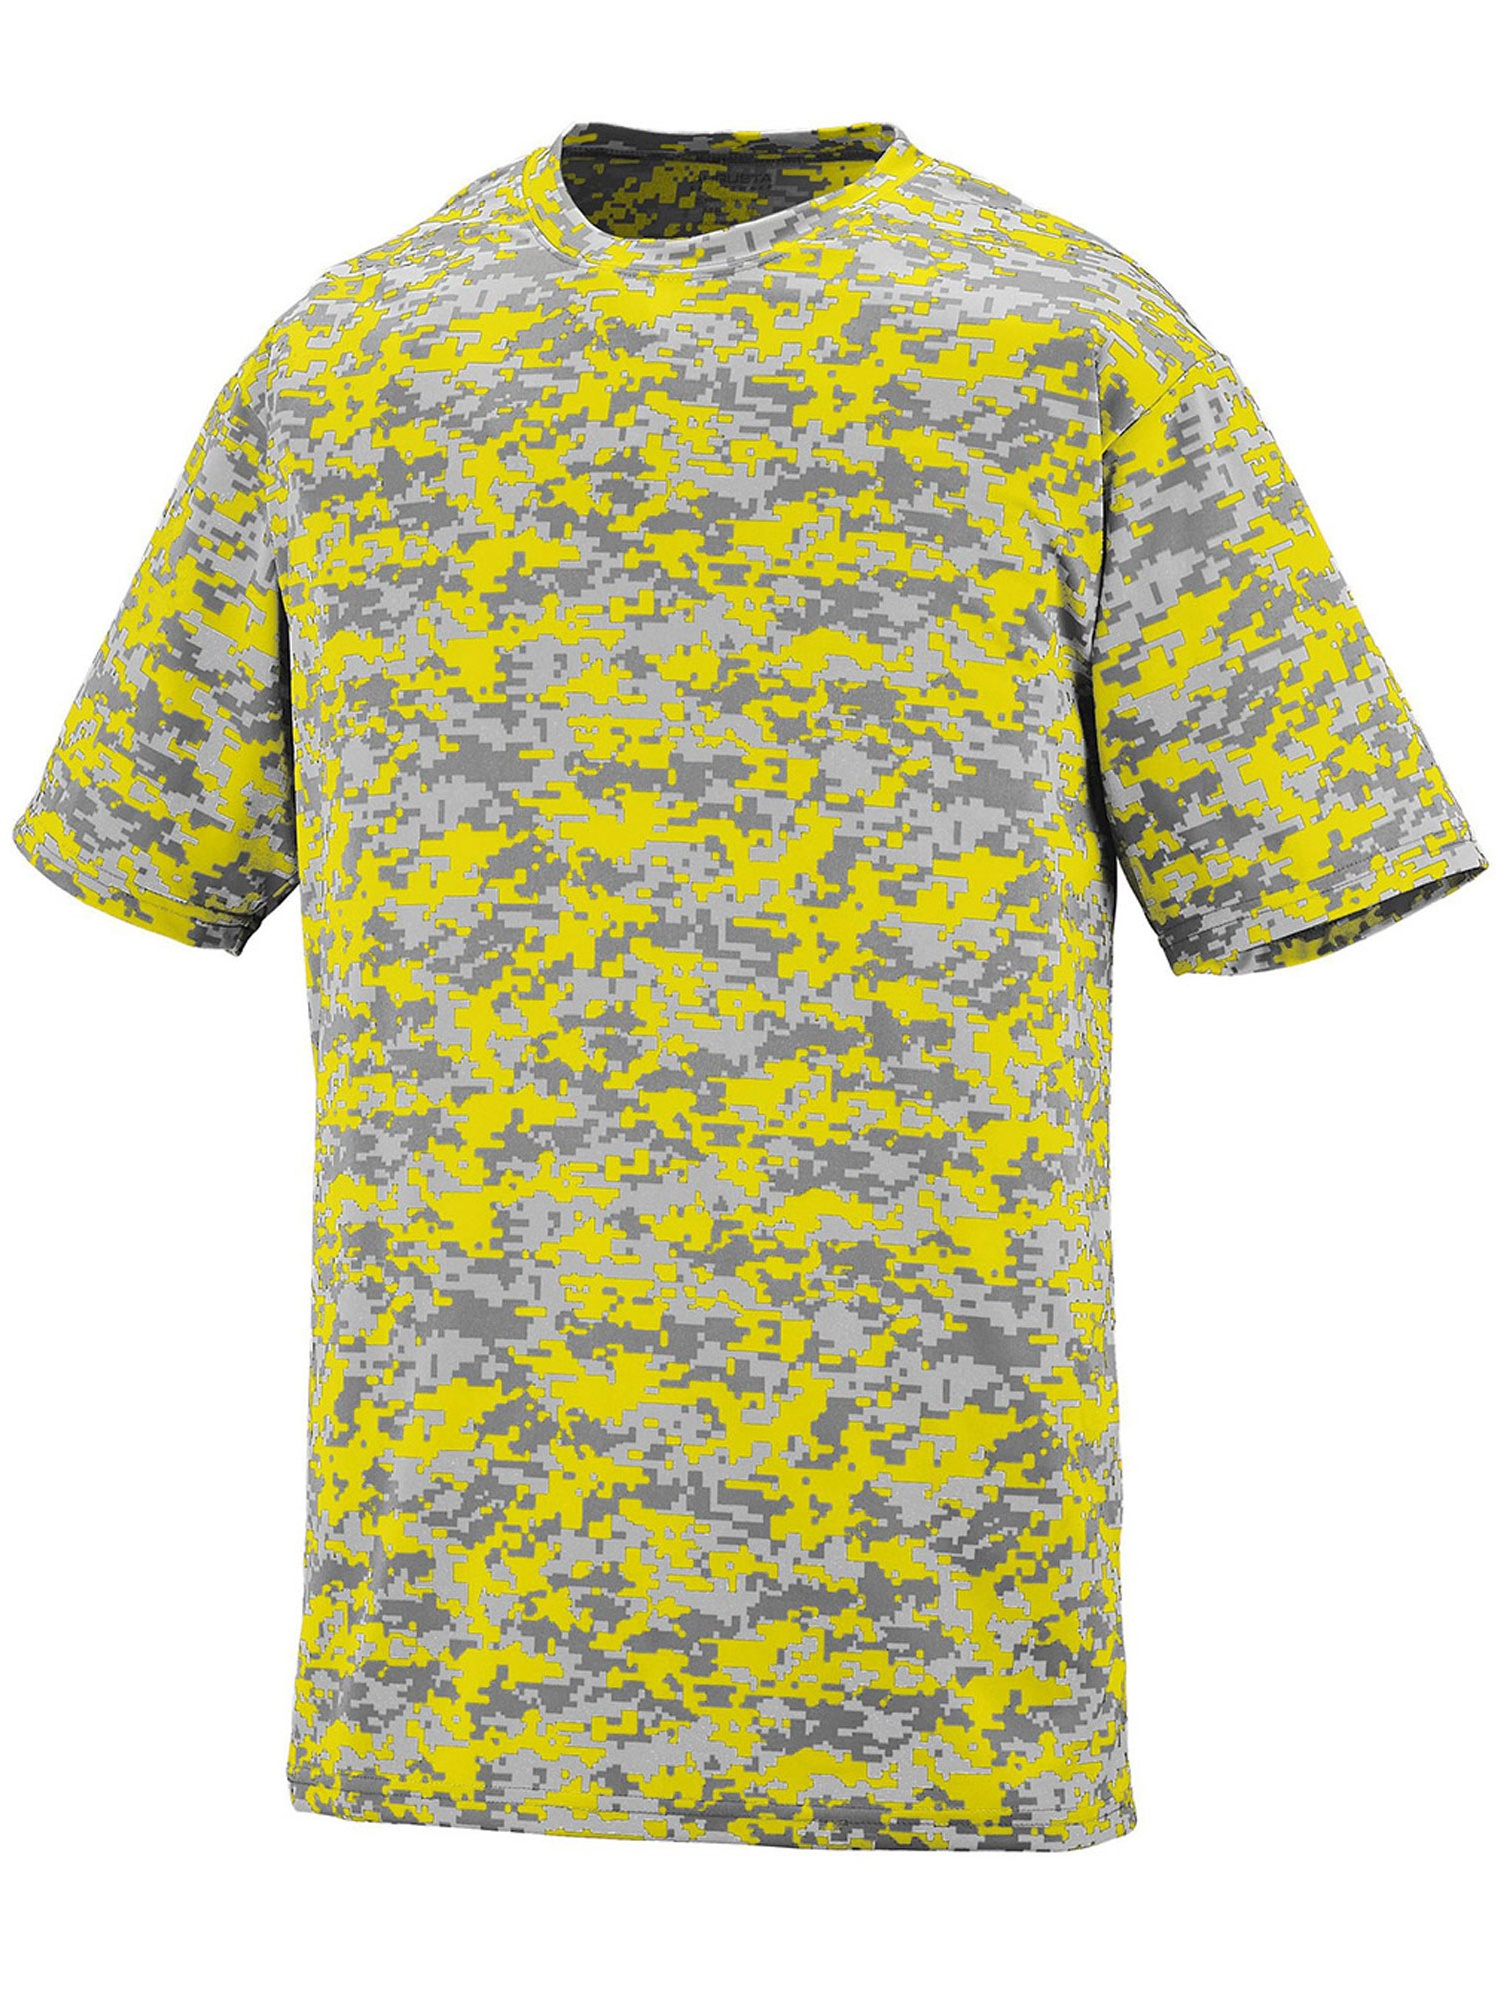 Augusta Men's Digi Camo Wicking T-Shirt, Style 1798A